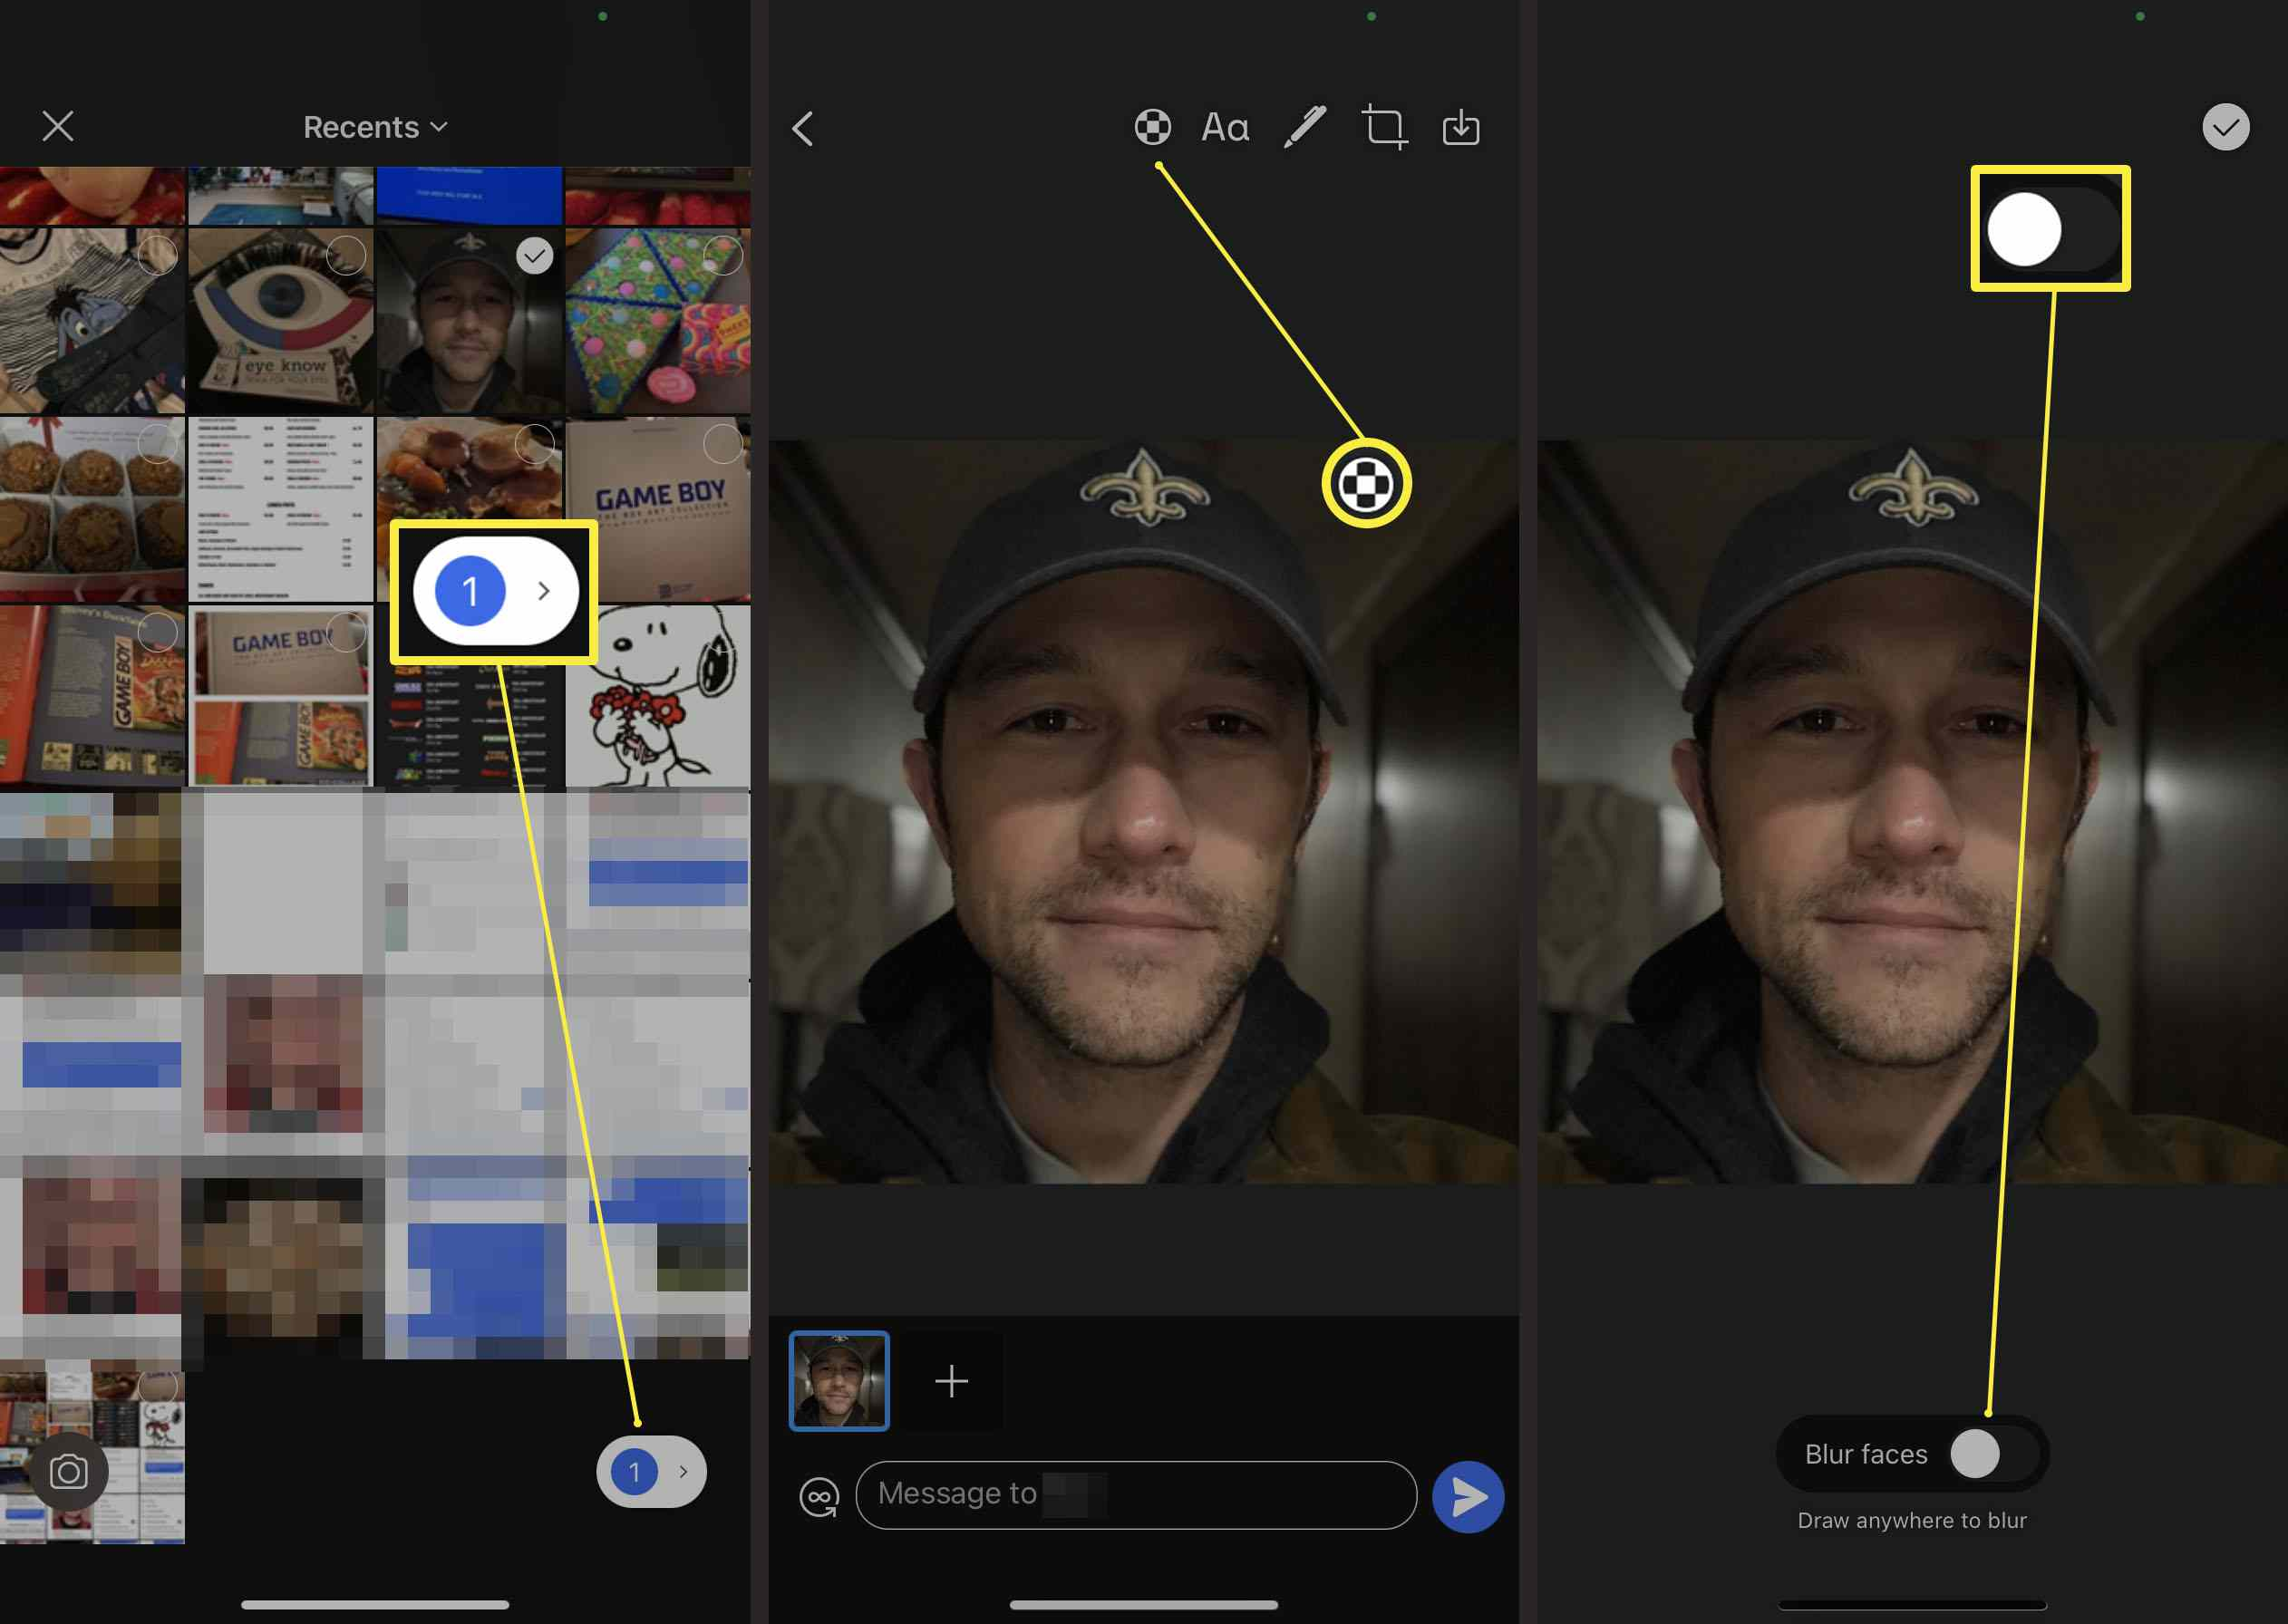 Steps required in Signal to automatically blur someone's face on a photo